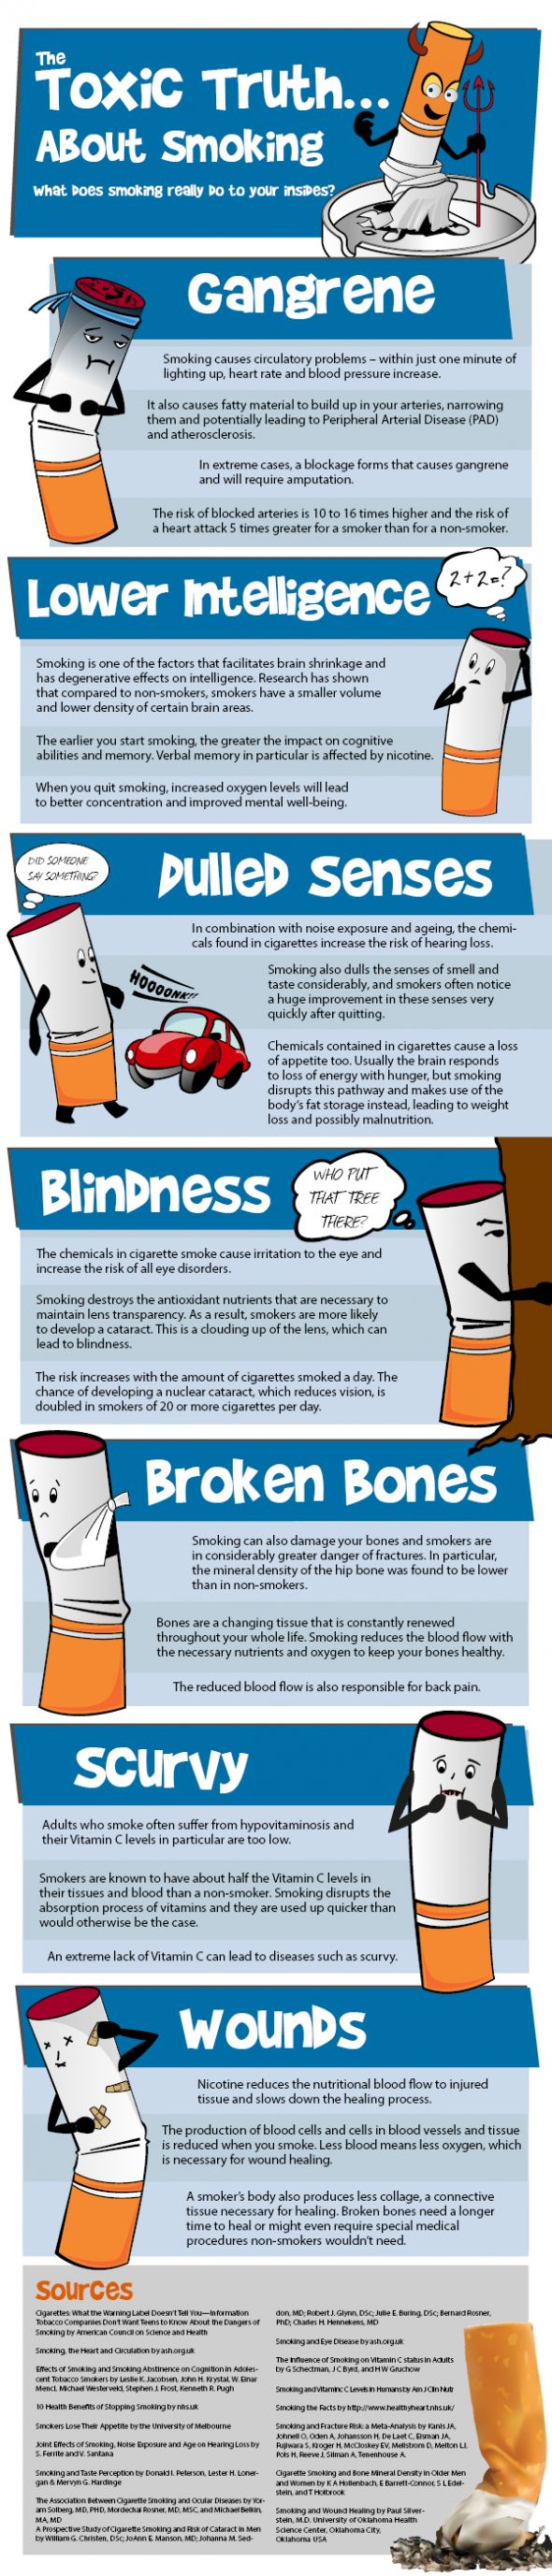 INFOGRAPHIC: SHOCKING SMOKING FACTS YOU'VE NEVER HEARD BEFORE. Dumb,  blind, slow, and general suckiness compared to the awesome non-smoker.  It's like sour smoking is a super power and smoking is Kryptonite.